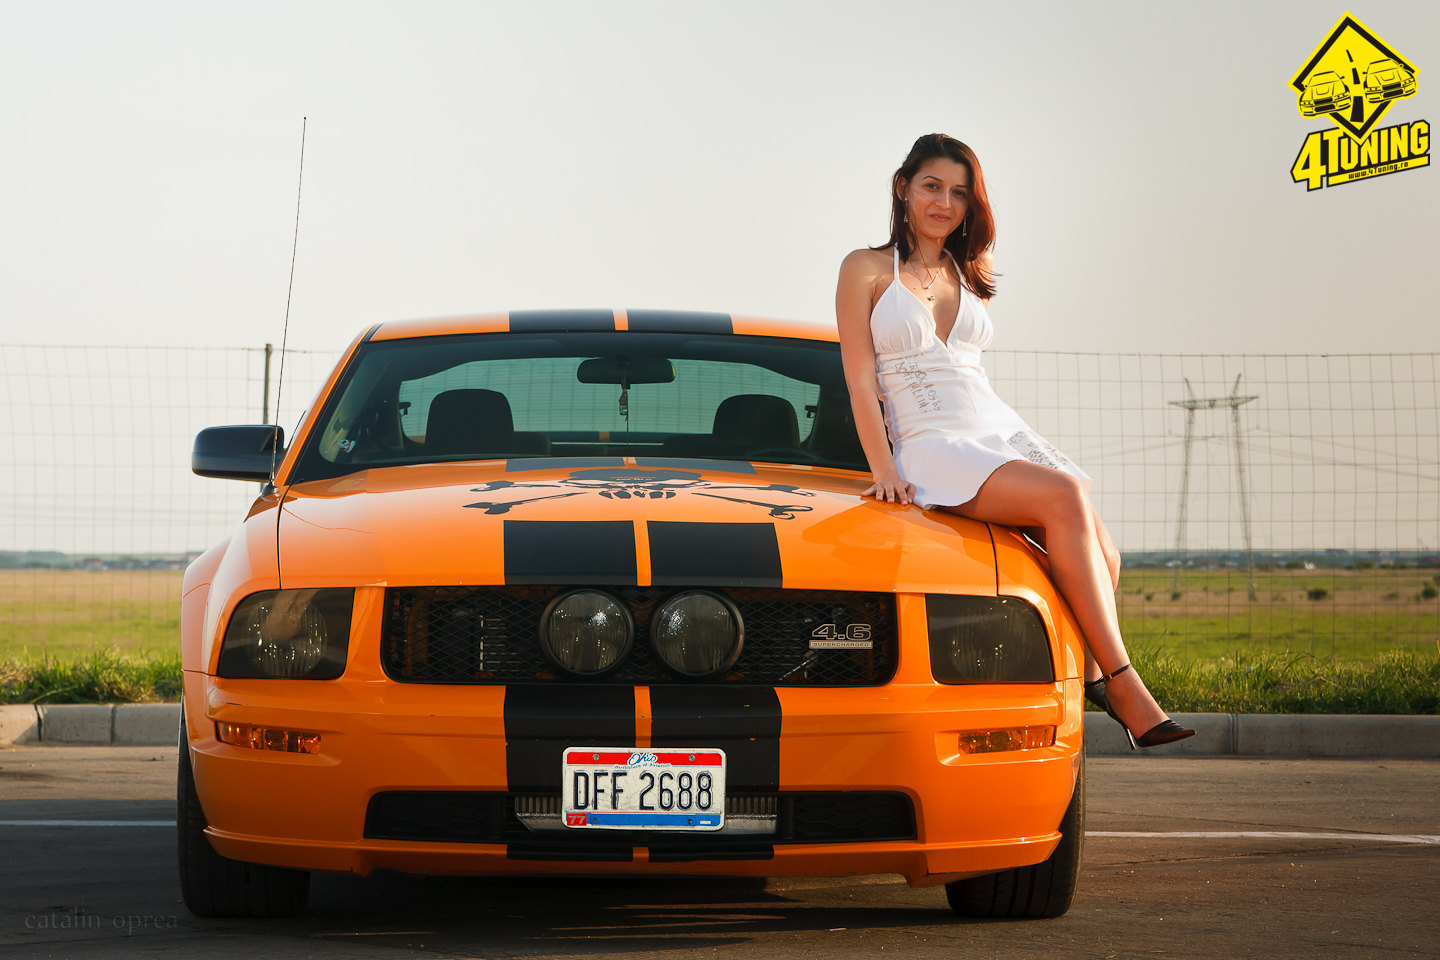 Poze Masini Tunate Din Romania Ford Mustang Gt Supercharged By Mihai 211892